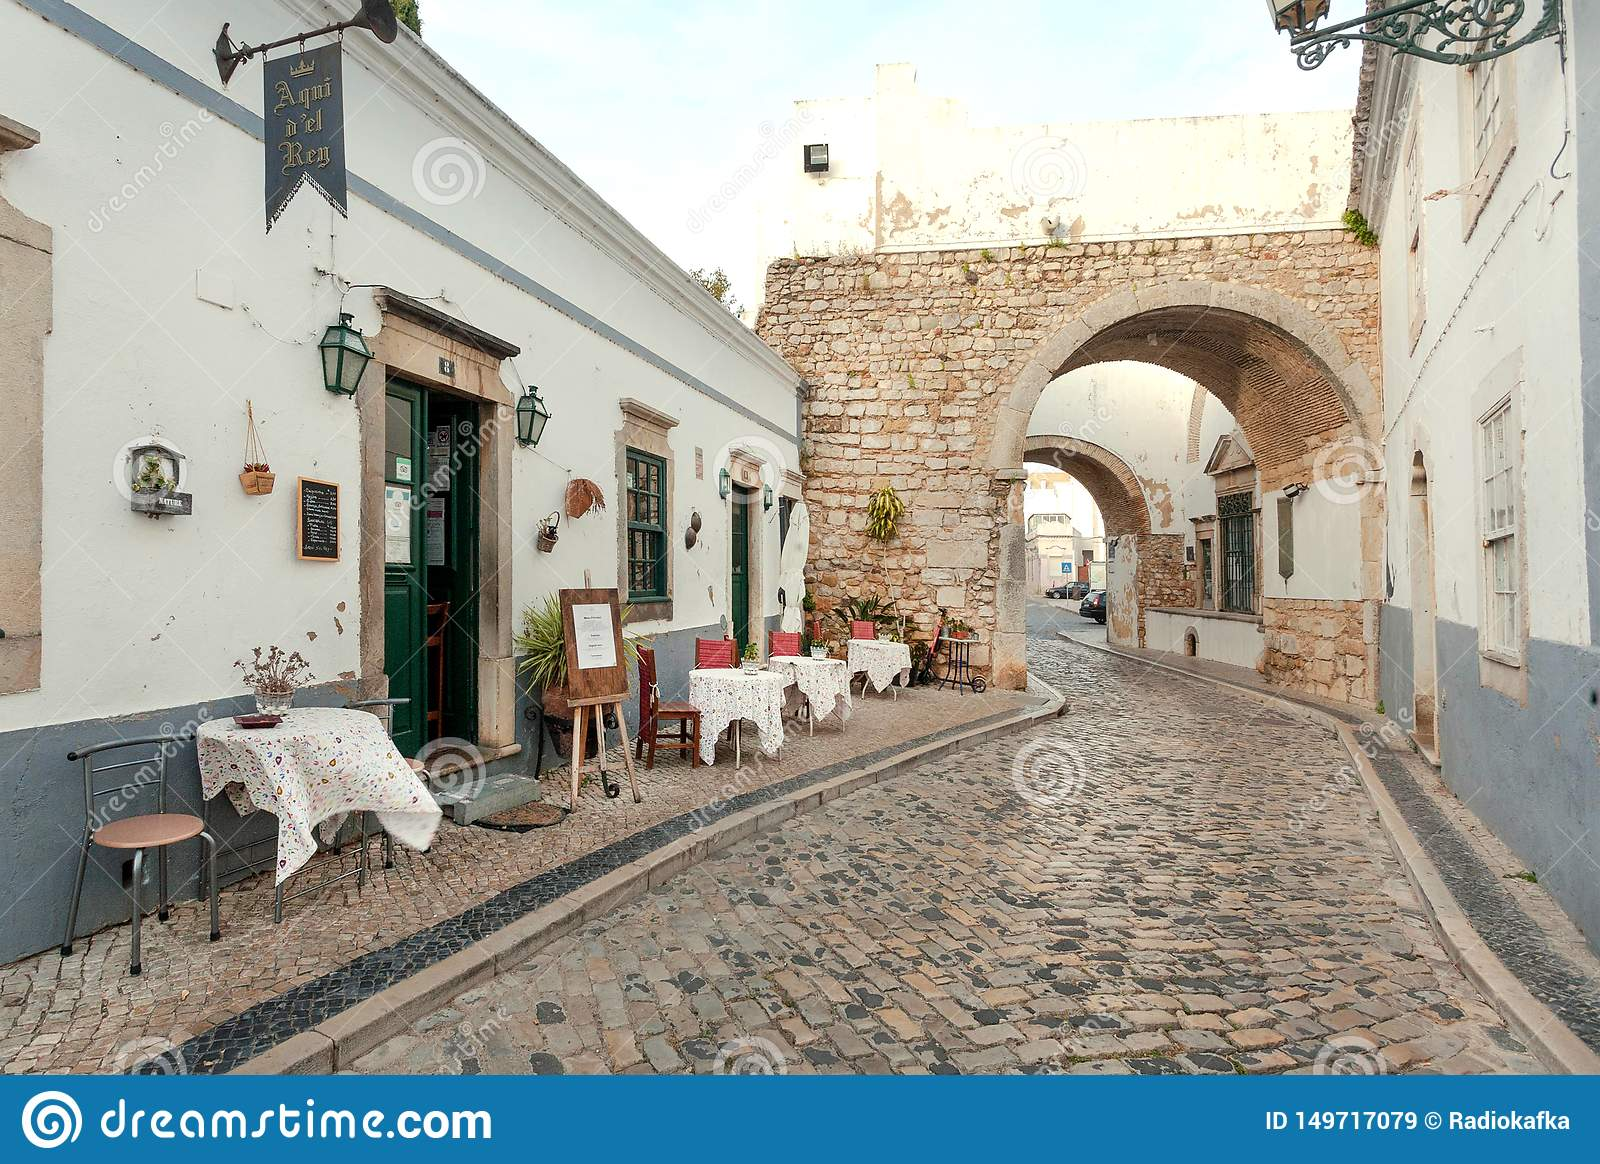 Street With Small Restaurant With Tables For Drinking And